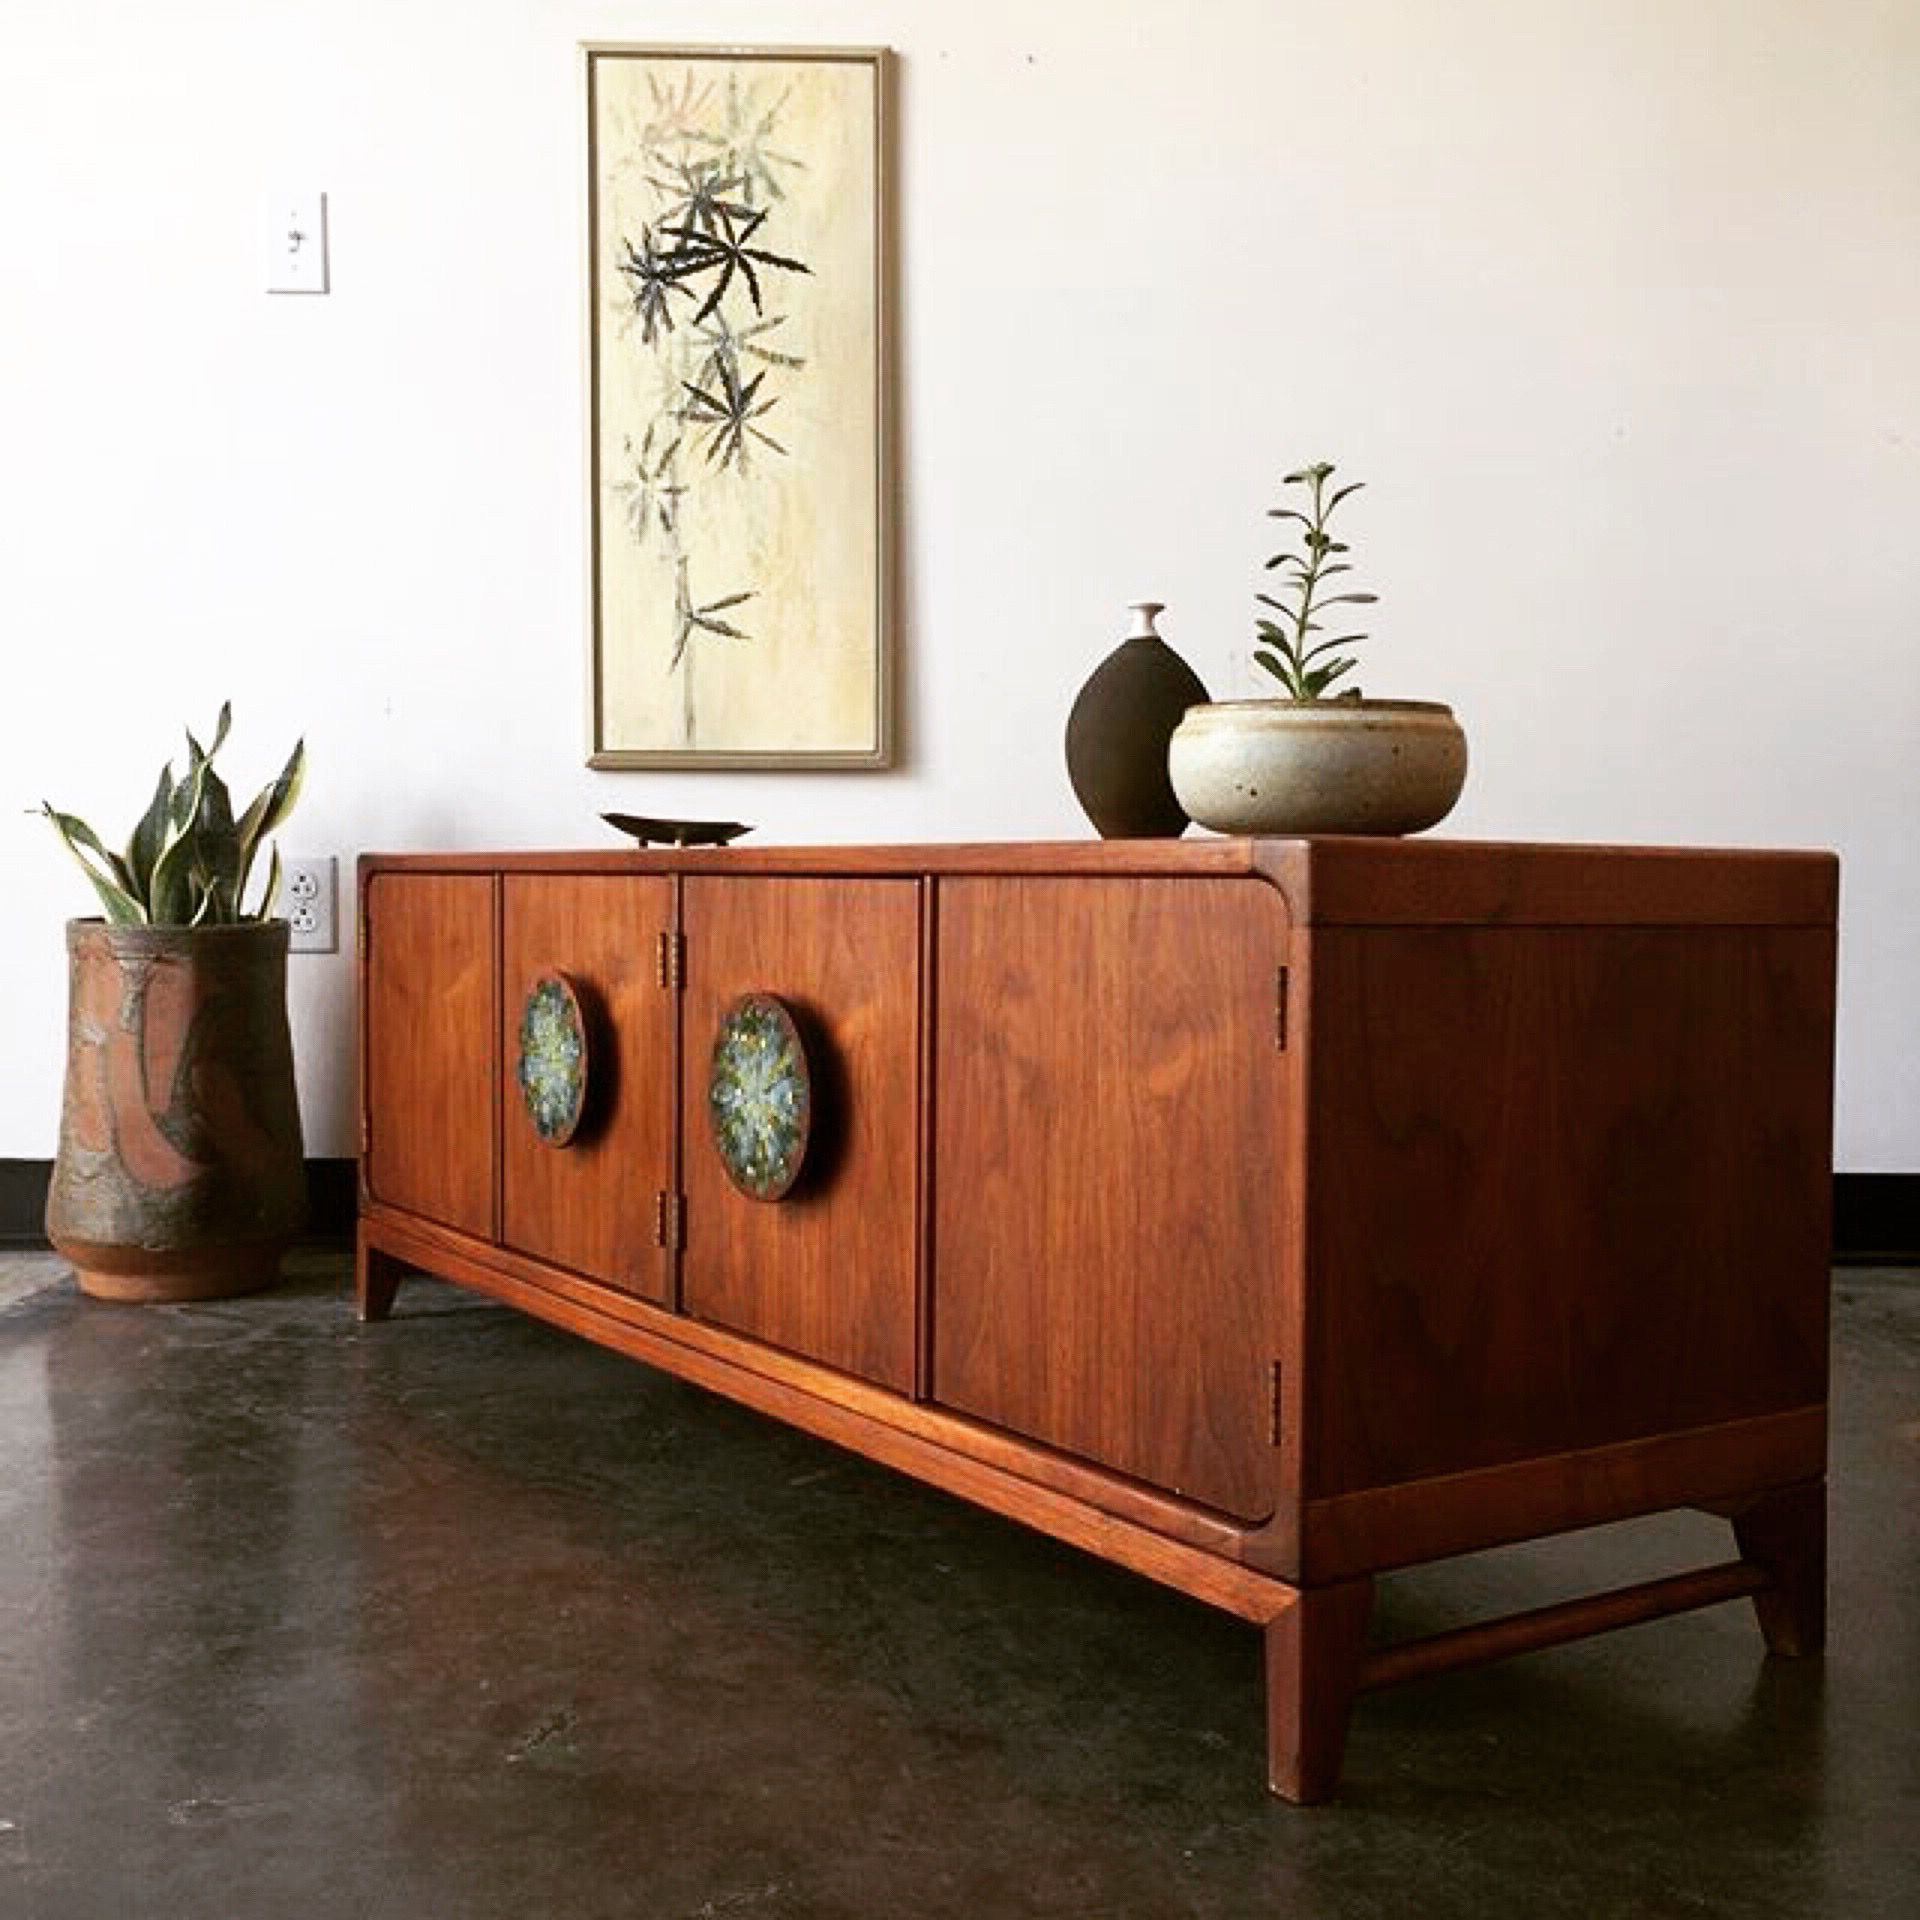 A Midcentury Modern Credenza Looking Very Much At Home With With Retro Holistic Credenzas (View 7 of 20)